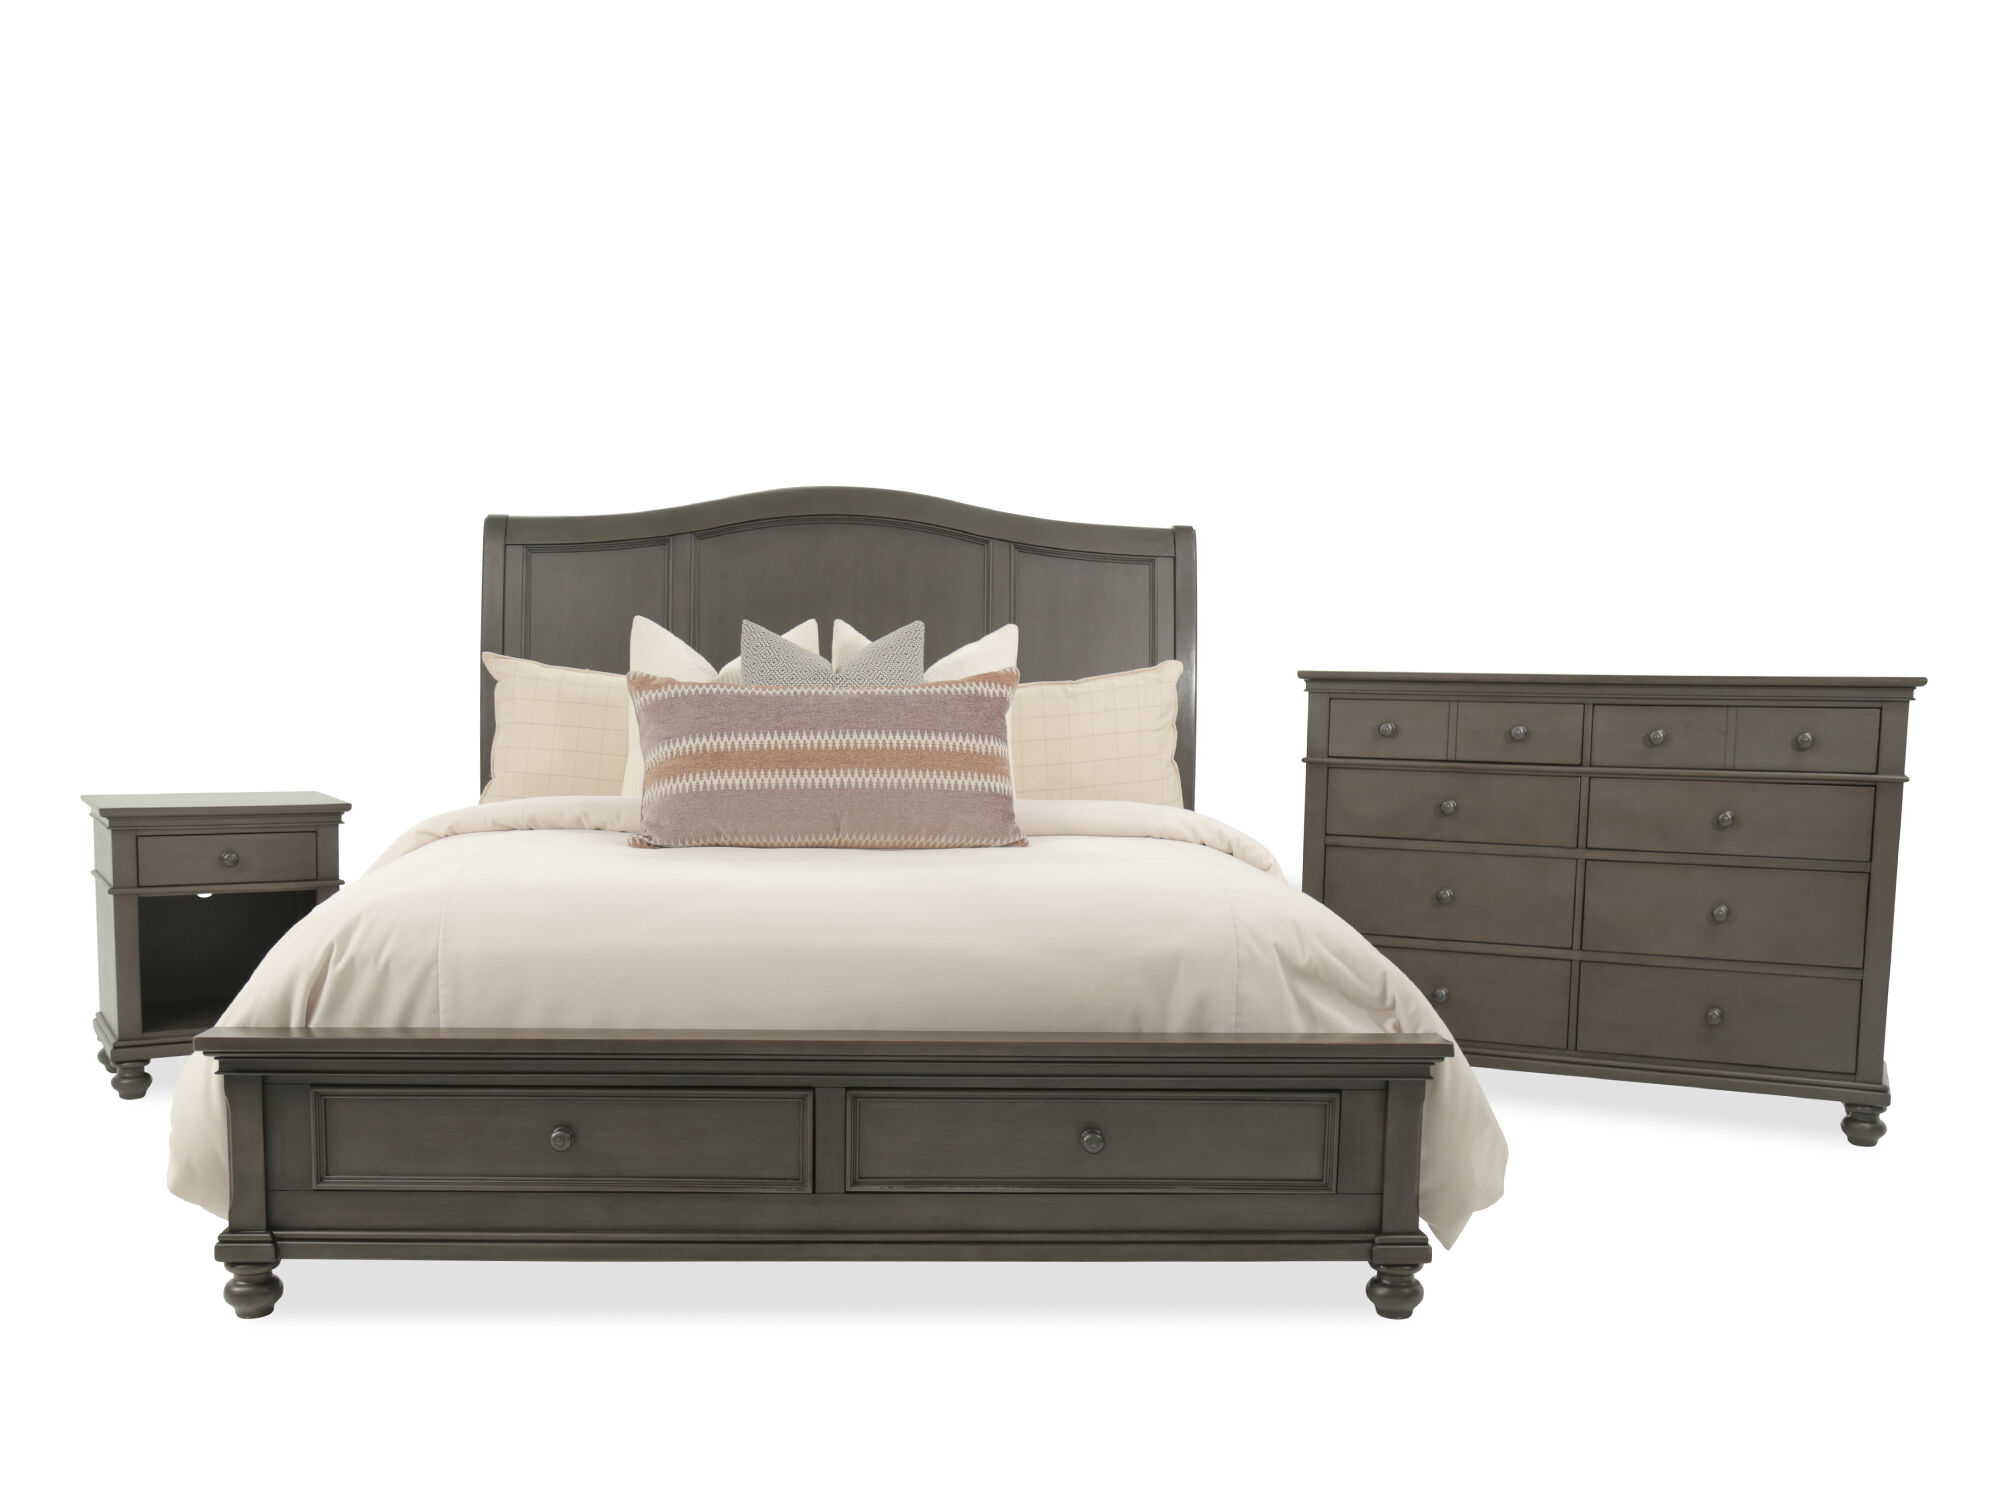 Three-Piece Transitional Storage Bedroom Set in Peppercorn | Mathis on colonial bedroom decorating ideas, spring bedroom decorating ideas, country bedroom decorating ideas, leather bedroom decorating ideas, traditional bedroom decorating ideas, contemporary bedroom decorating ideas, asian bedroom decorating ideas, bungalow bedroom decorating ideas, antique bedroom decorating ideas, tuscan bedroom decorating ideas, southwest bedroom decorating ideas, arts and crafts bedroom decorating ideas, classic bedroom decorating ideas, french country decorating ideas, black bedroom decorating ideas, elegant bedroom decorating ideas, crystal bedroom decorating ideas, industrial bedroom decorating ideas, master bedroom decorating ideas, beach bedroom decorating ideas,